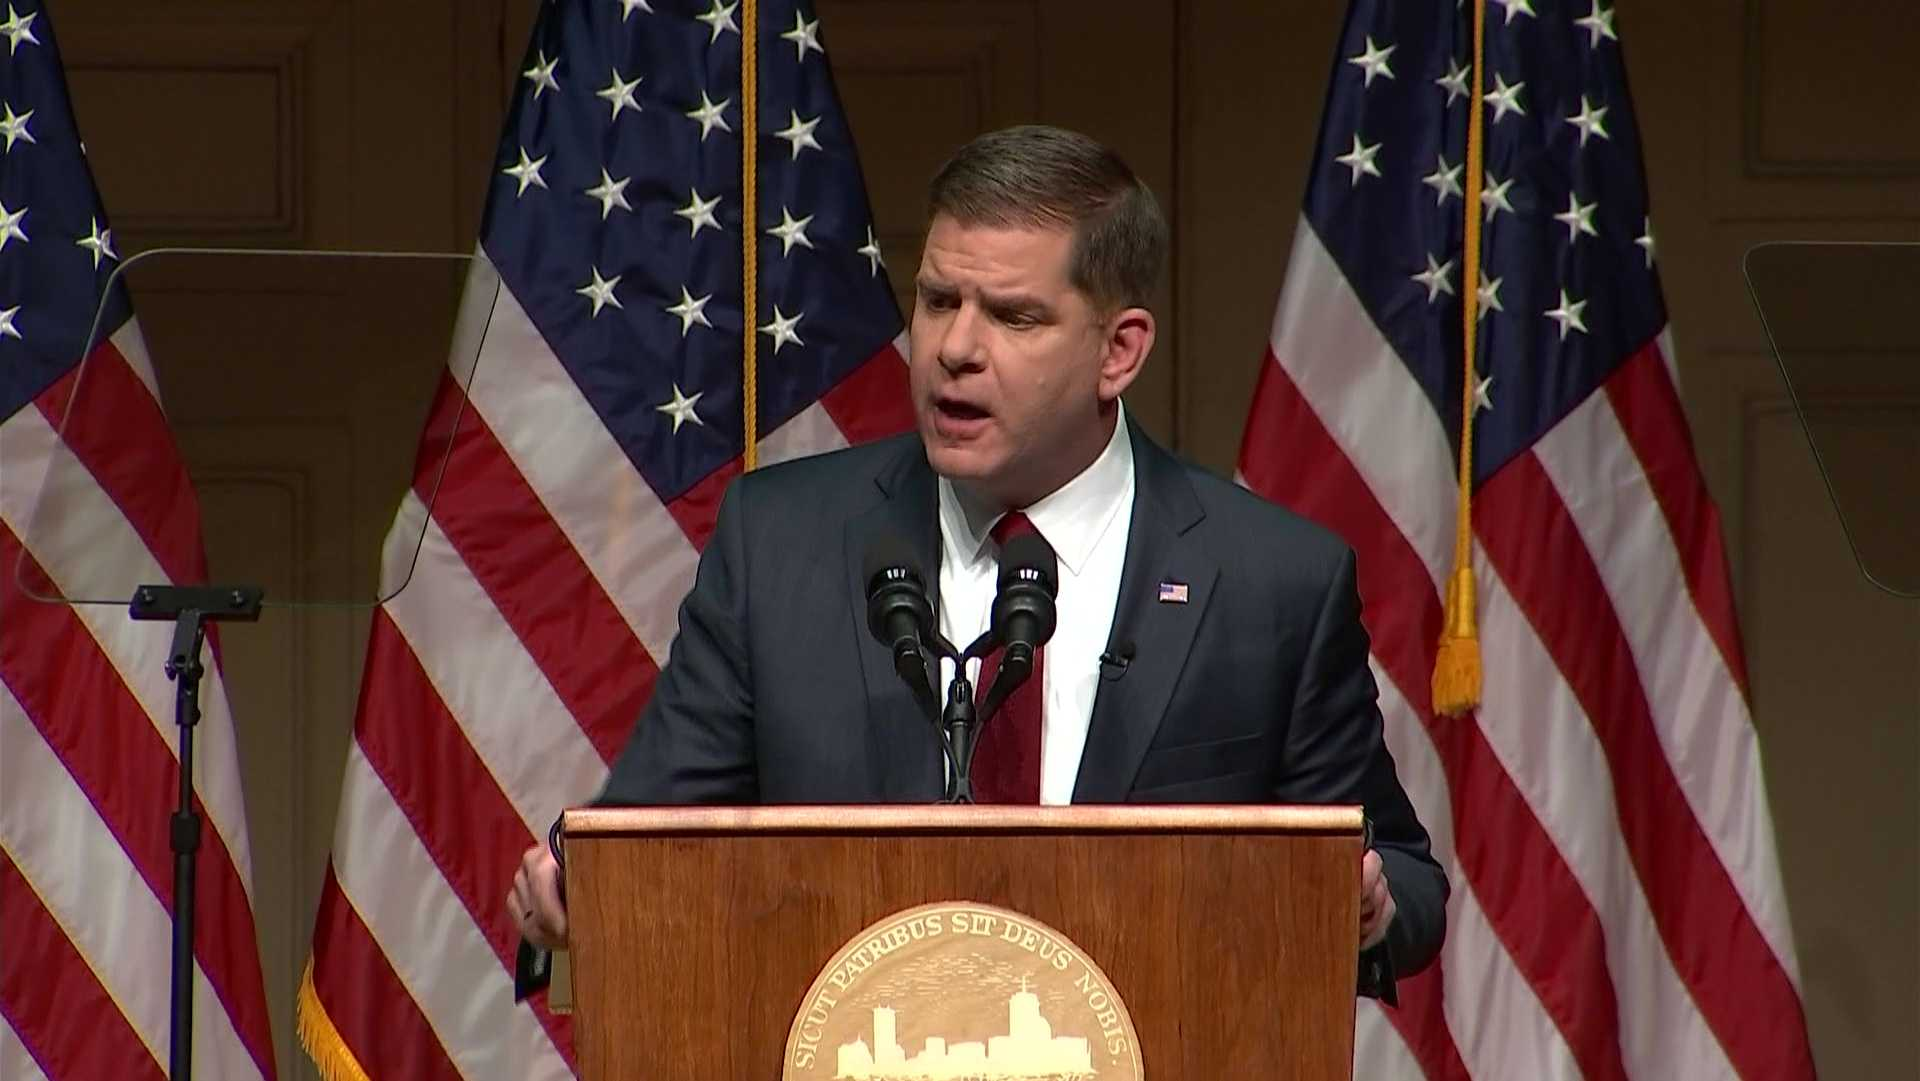 Marty Walsh speaks at the State of the City address in Boston